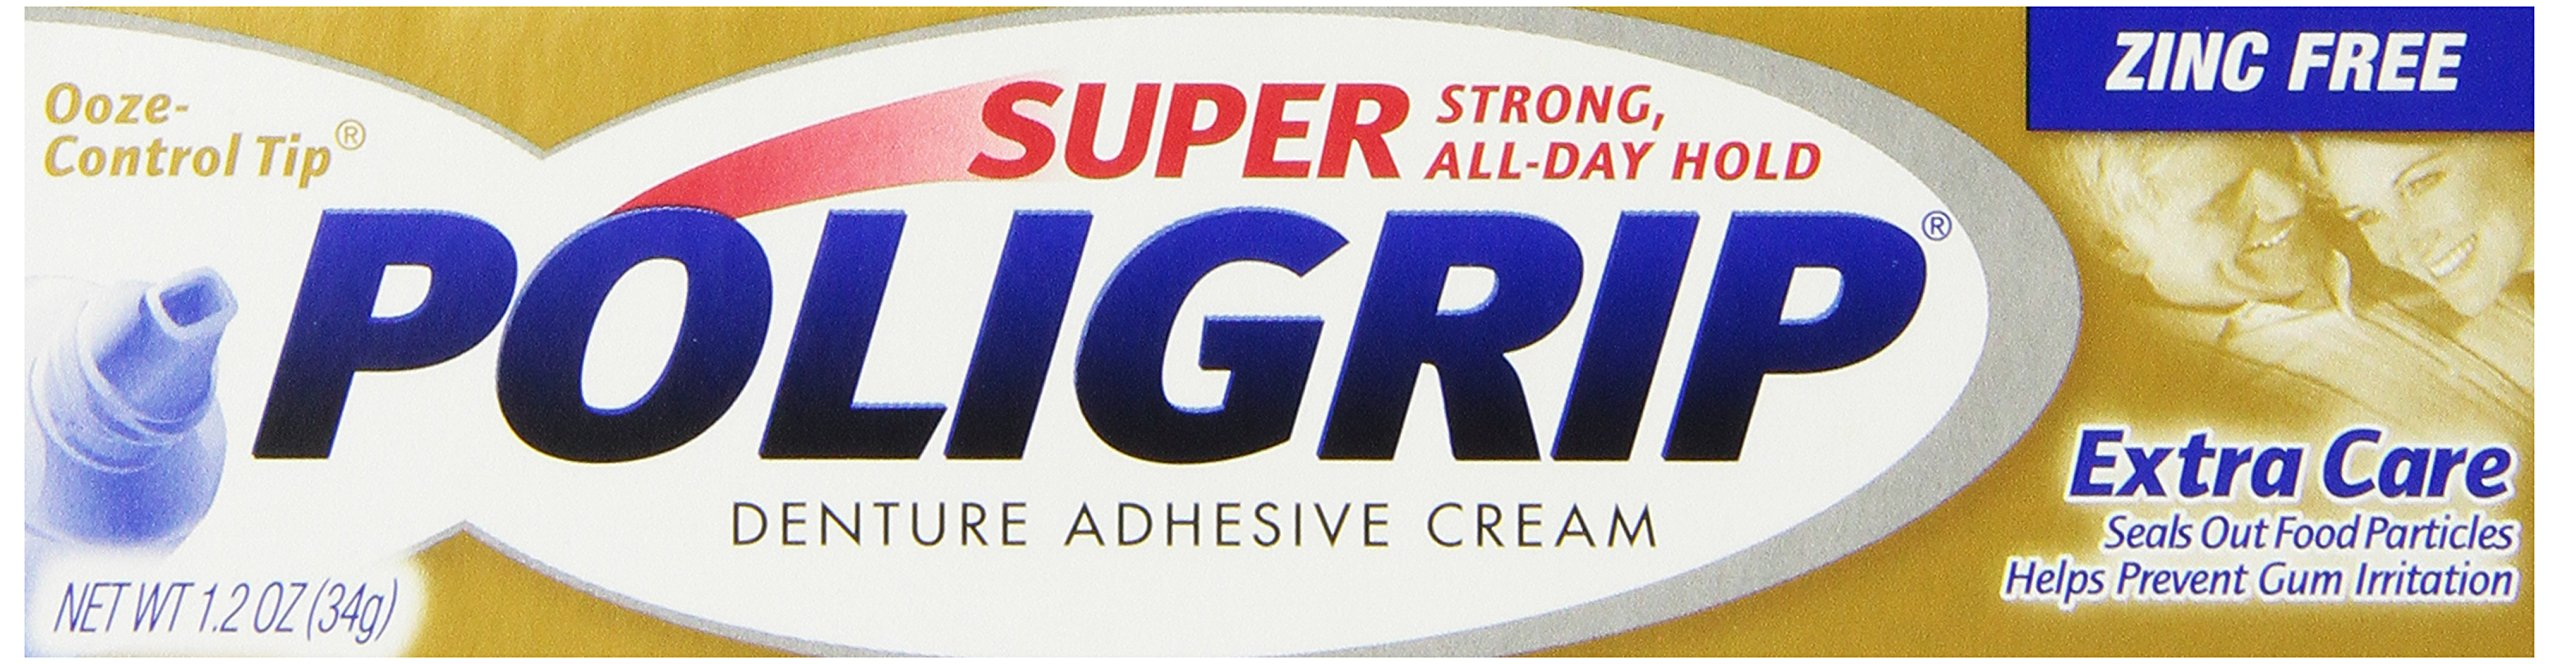 Super Poligrip Extra Care with Poliseal, 1.2-Ounce Packages (Pack of 6)